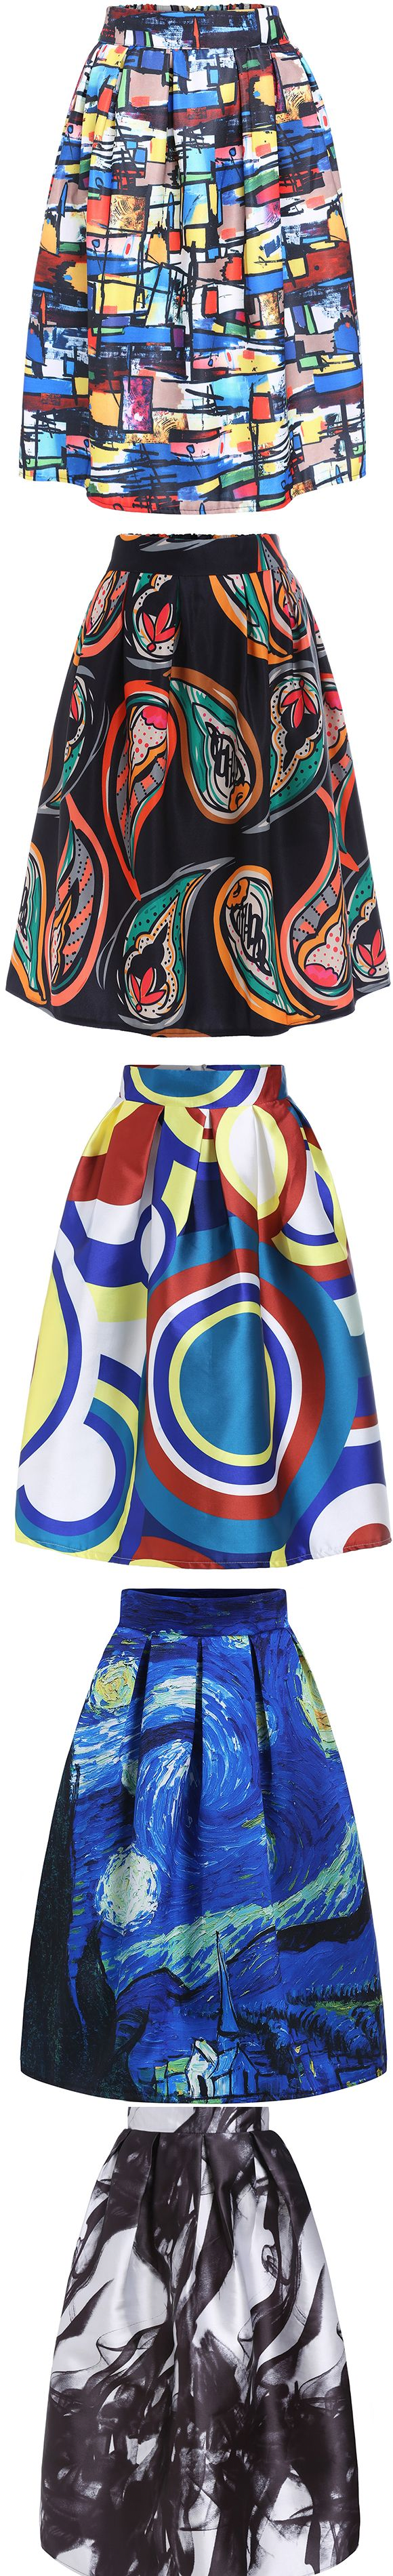 Multicolor vintage print midi skirt.  Best skirt for spring/fall.  Find more from SheIn.com